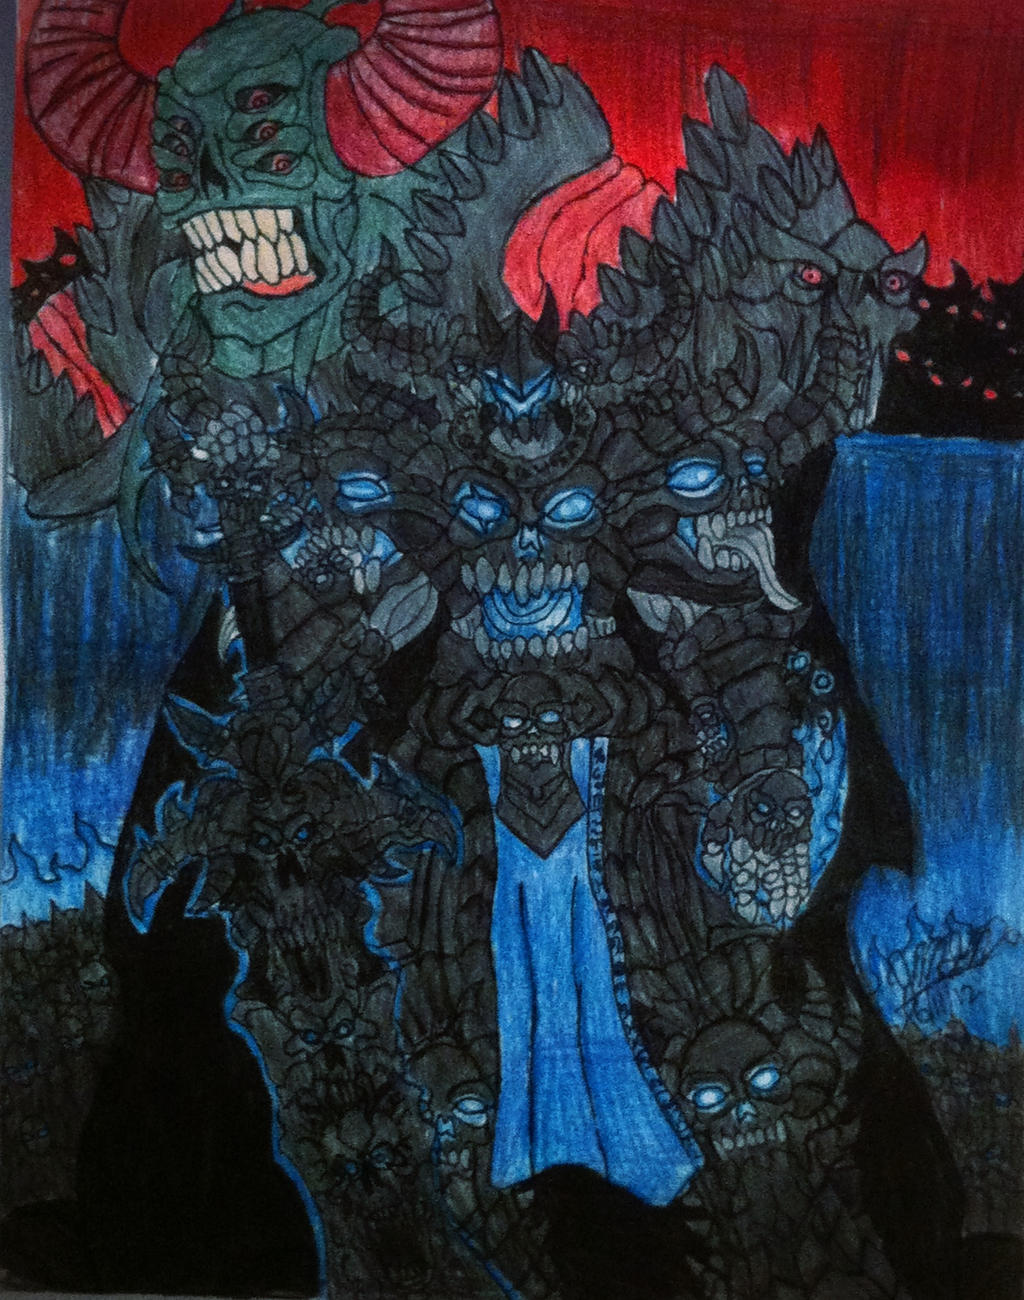 Dage favourites by Teraculus01 on DeviantArt